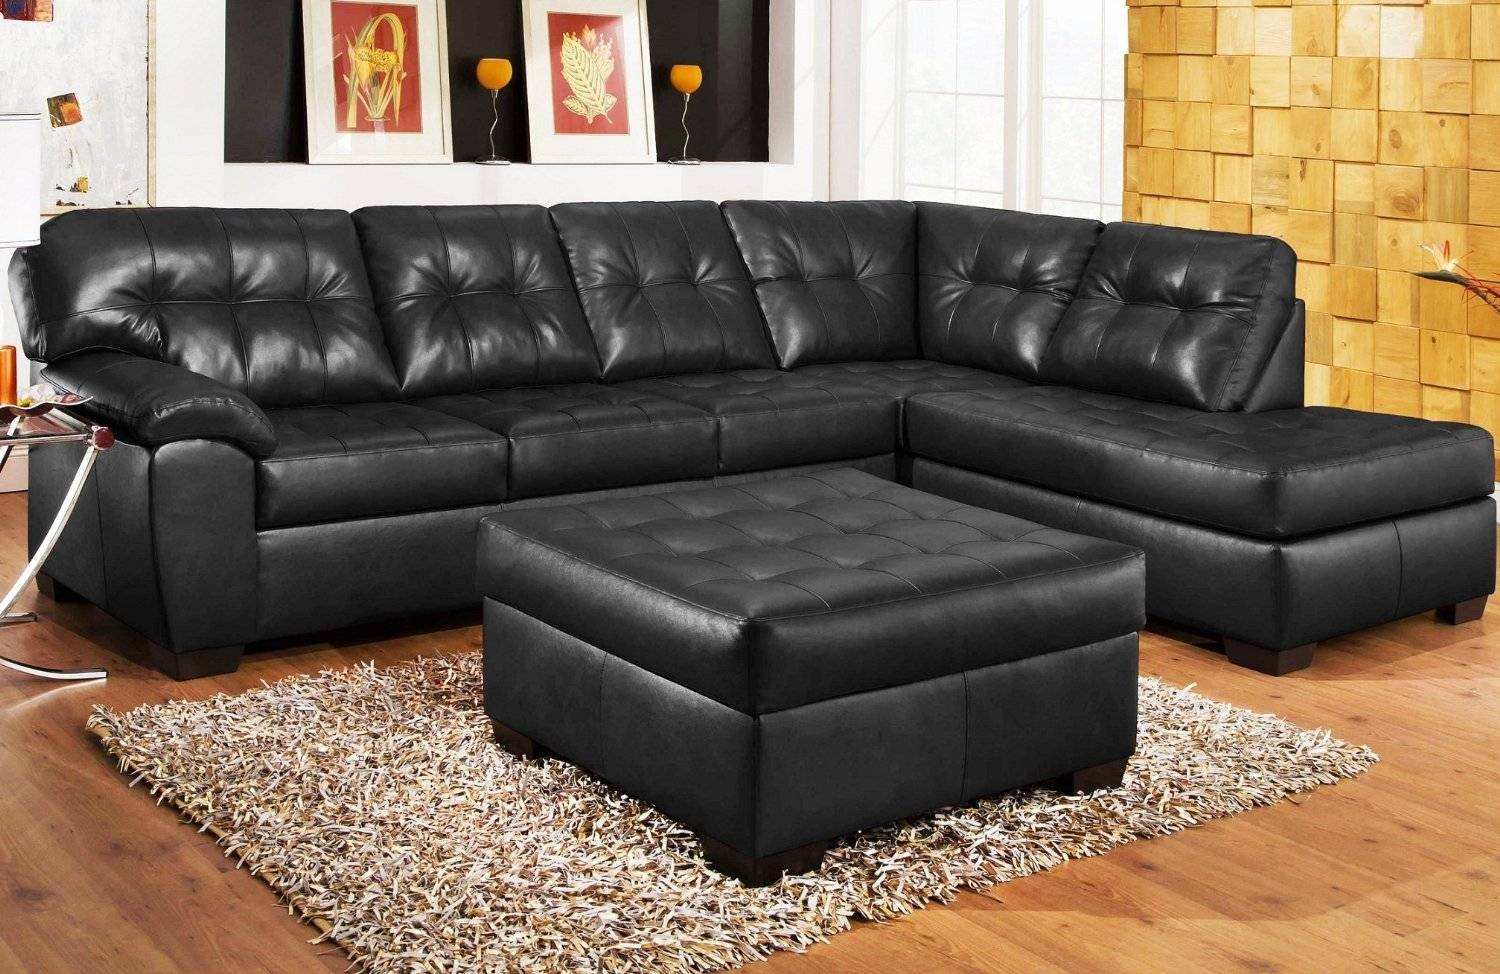 Sofas Center : Leather Sectional Sofas Closeouts In San Diego With with Closeout Sectional Sofas (Image 18 of 30)